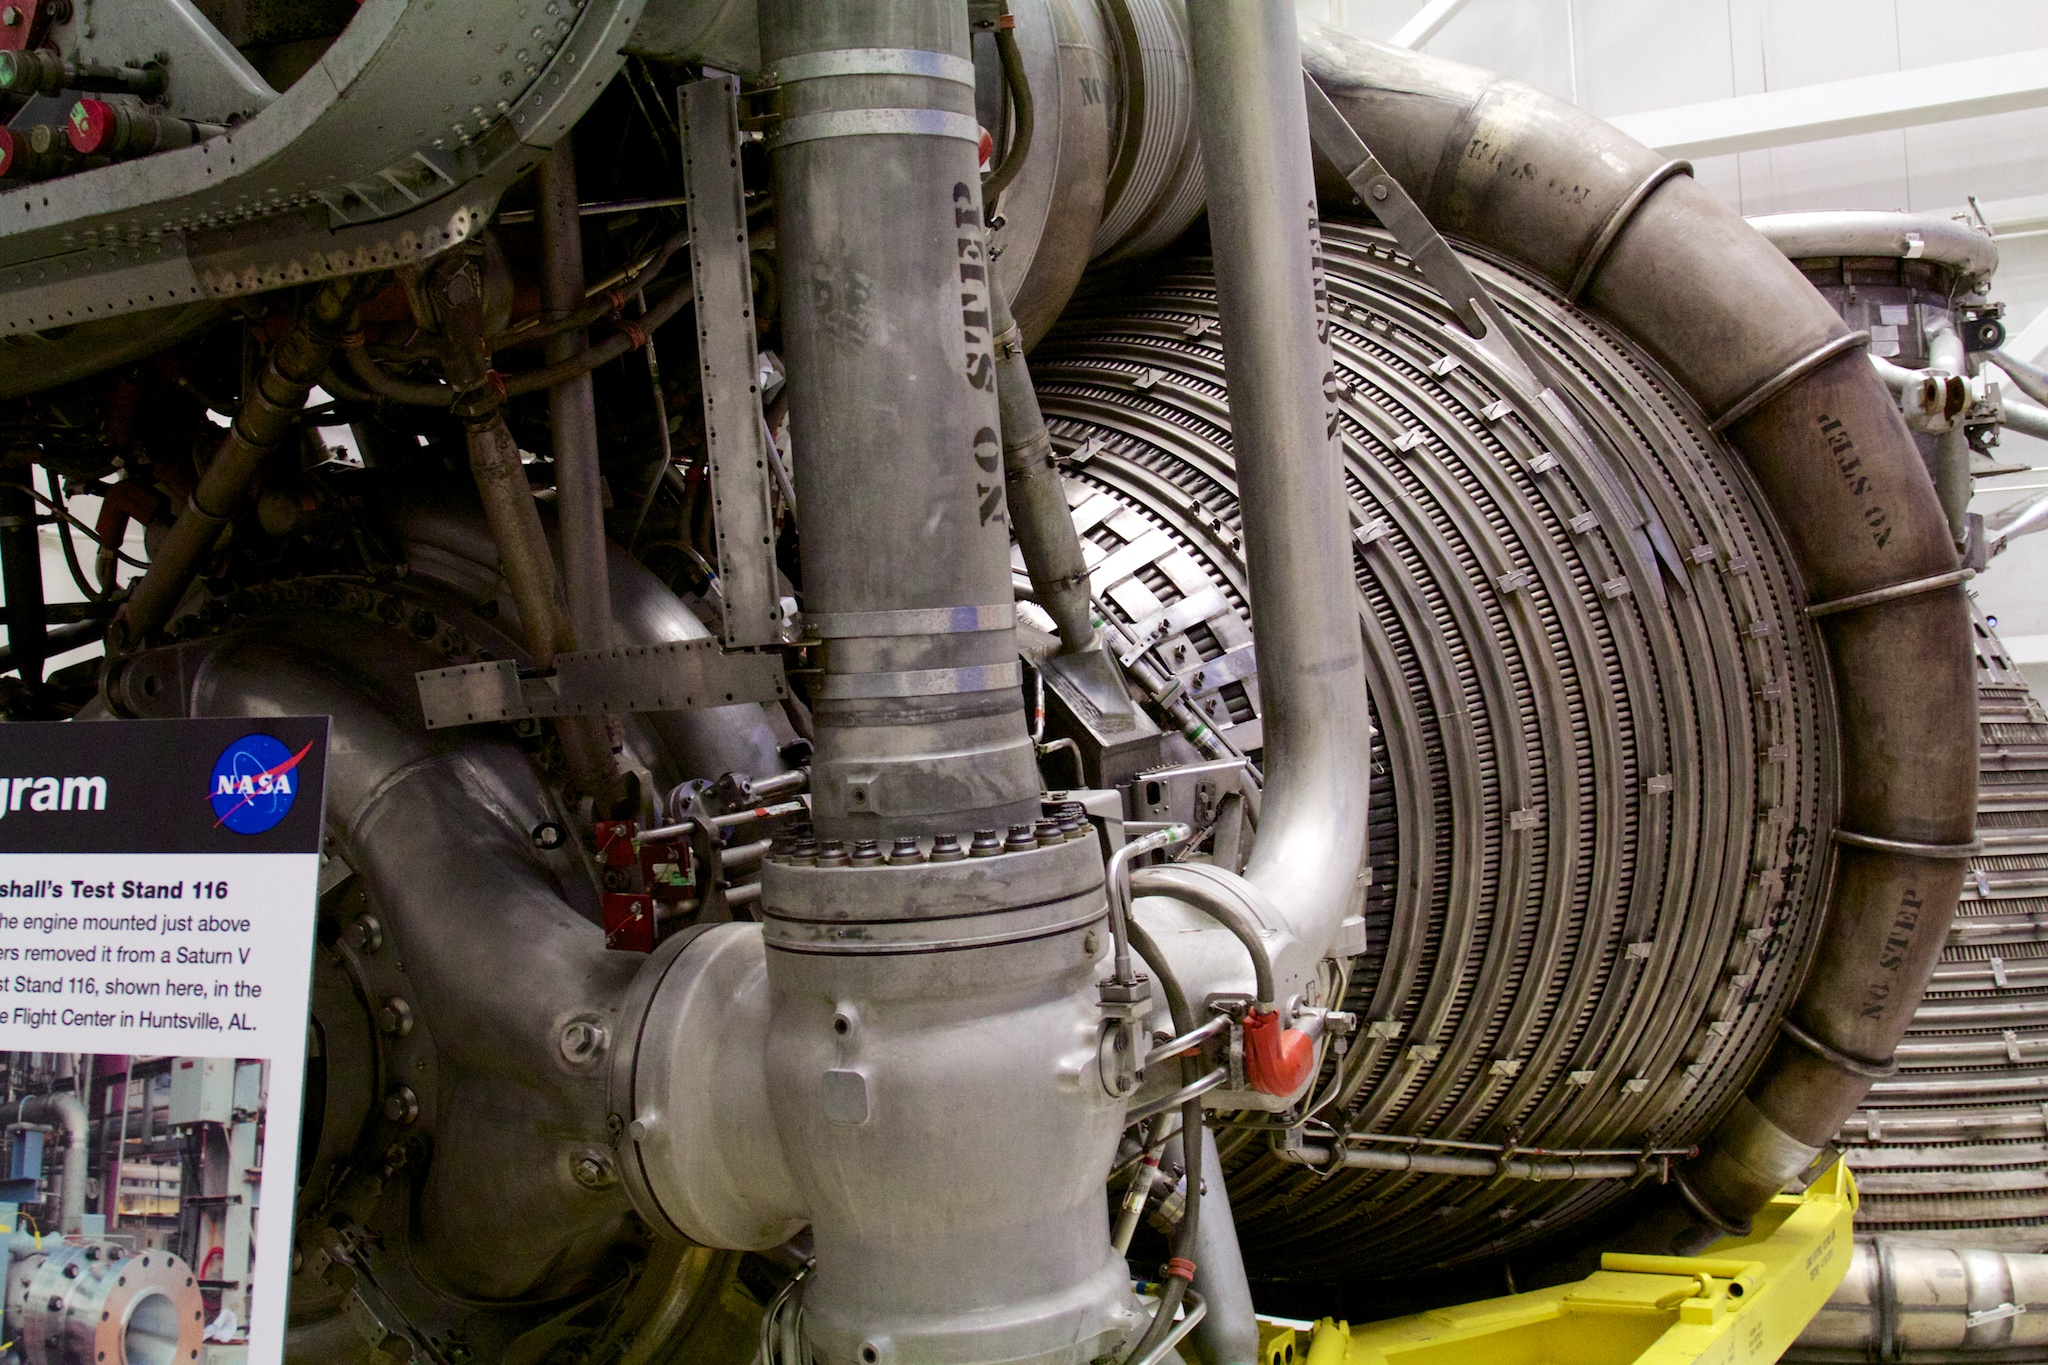 Detail on the upper thrust chamber of an Apollo-era F-1 engine. Note the tightly packed series of tubes, bound together with barrel-like hoops—these recirculate RP-1 fuel to cool the nozzle, similar to how the methane aerospike engine recirculates fuel through its plug. New engine, tried-and-true cooling strategies.